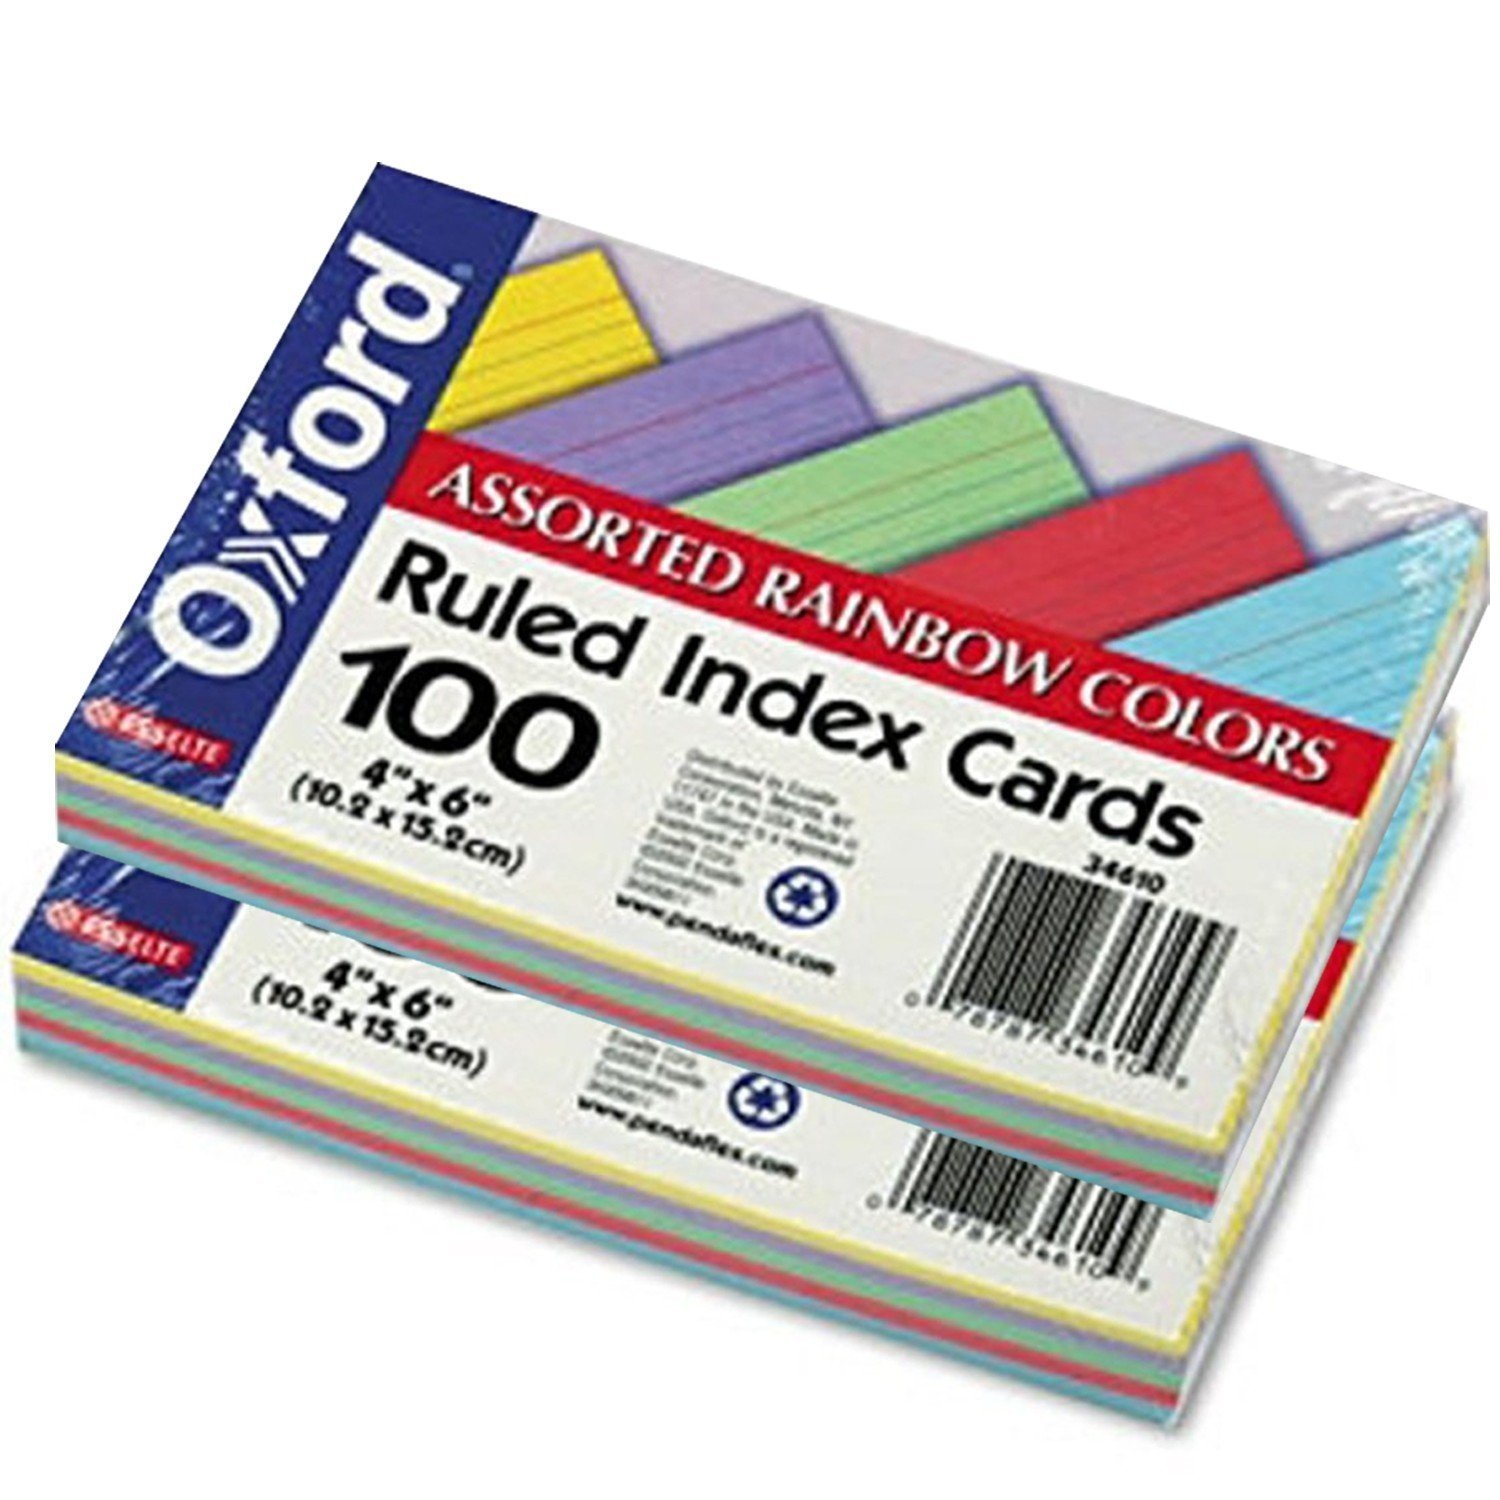 Recycled Oxford Color-Pack Index Cards, Ruled, 4''x6'', 20 Each 5 Colors ESS34610, 2 Pack of 100 Cards